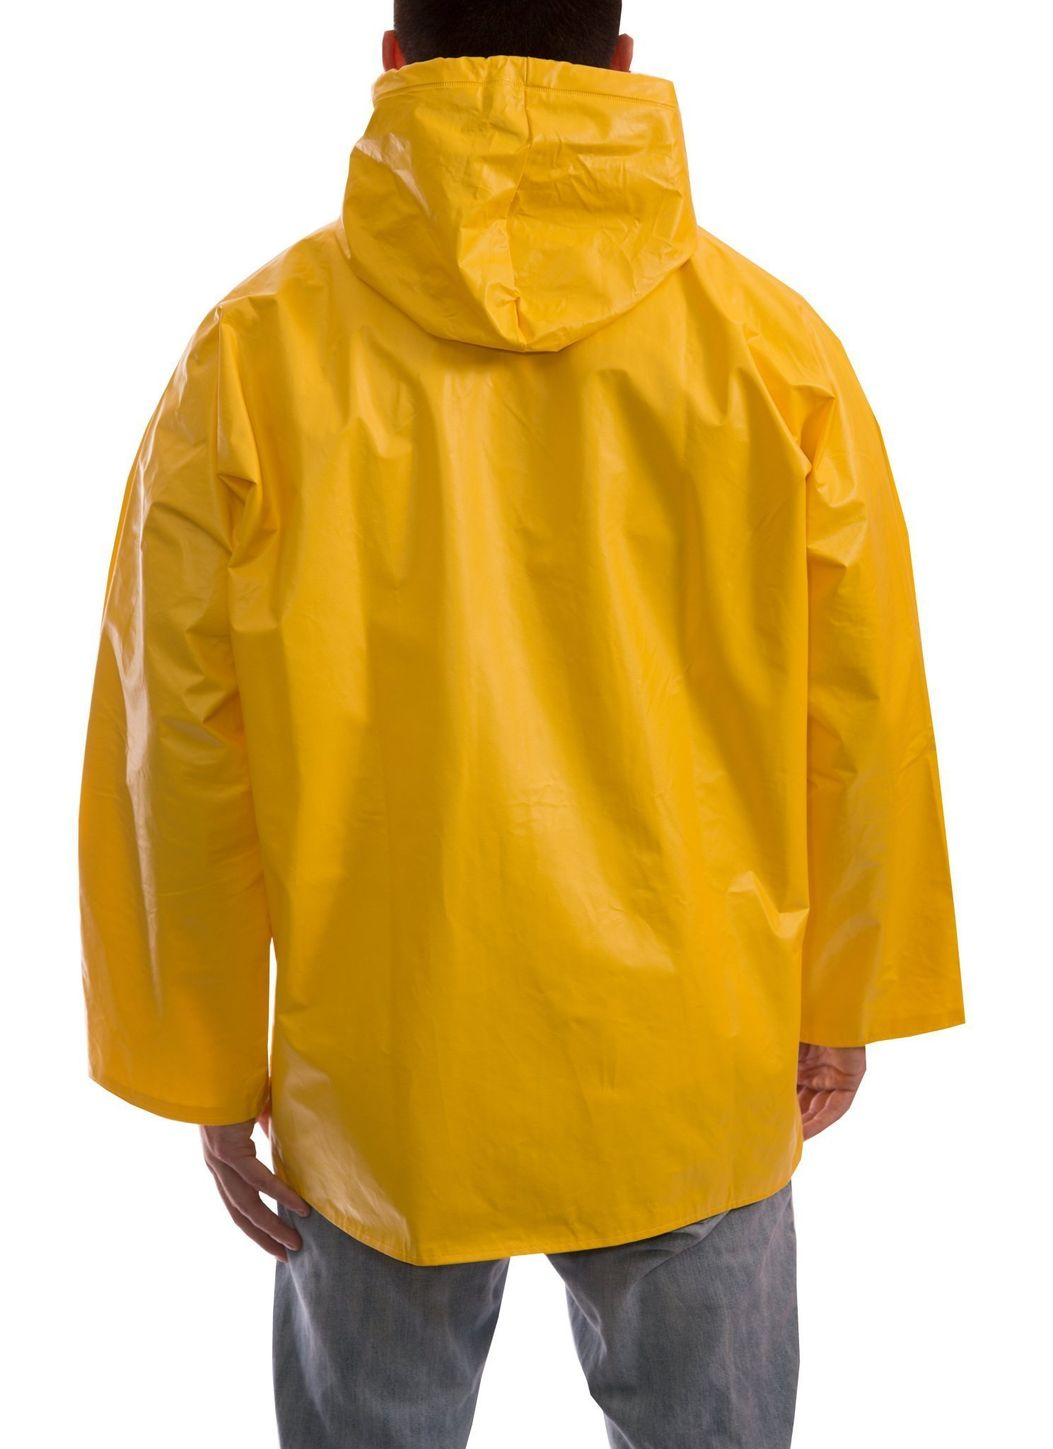 tingley-j32107-pvc-coated-work-jacket-with-attached-hood-back.jpg